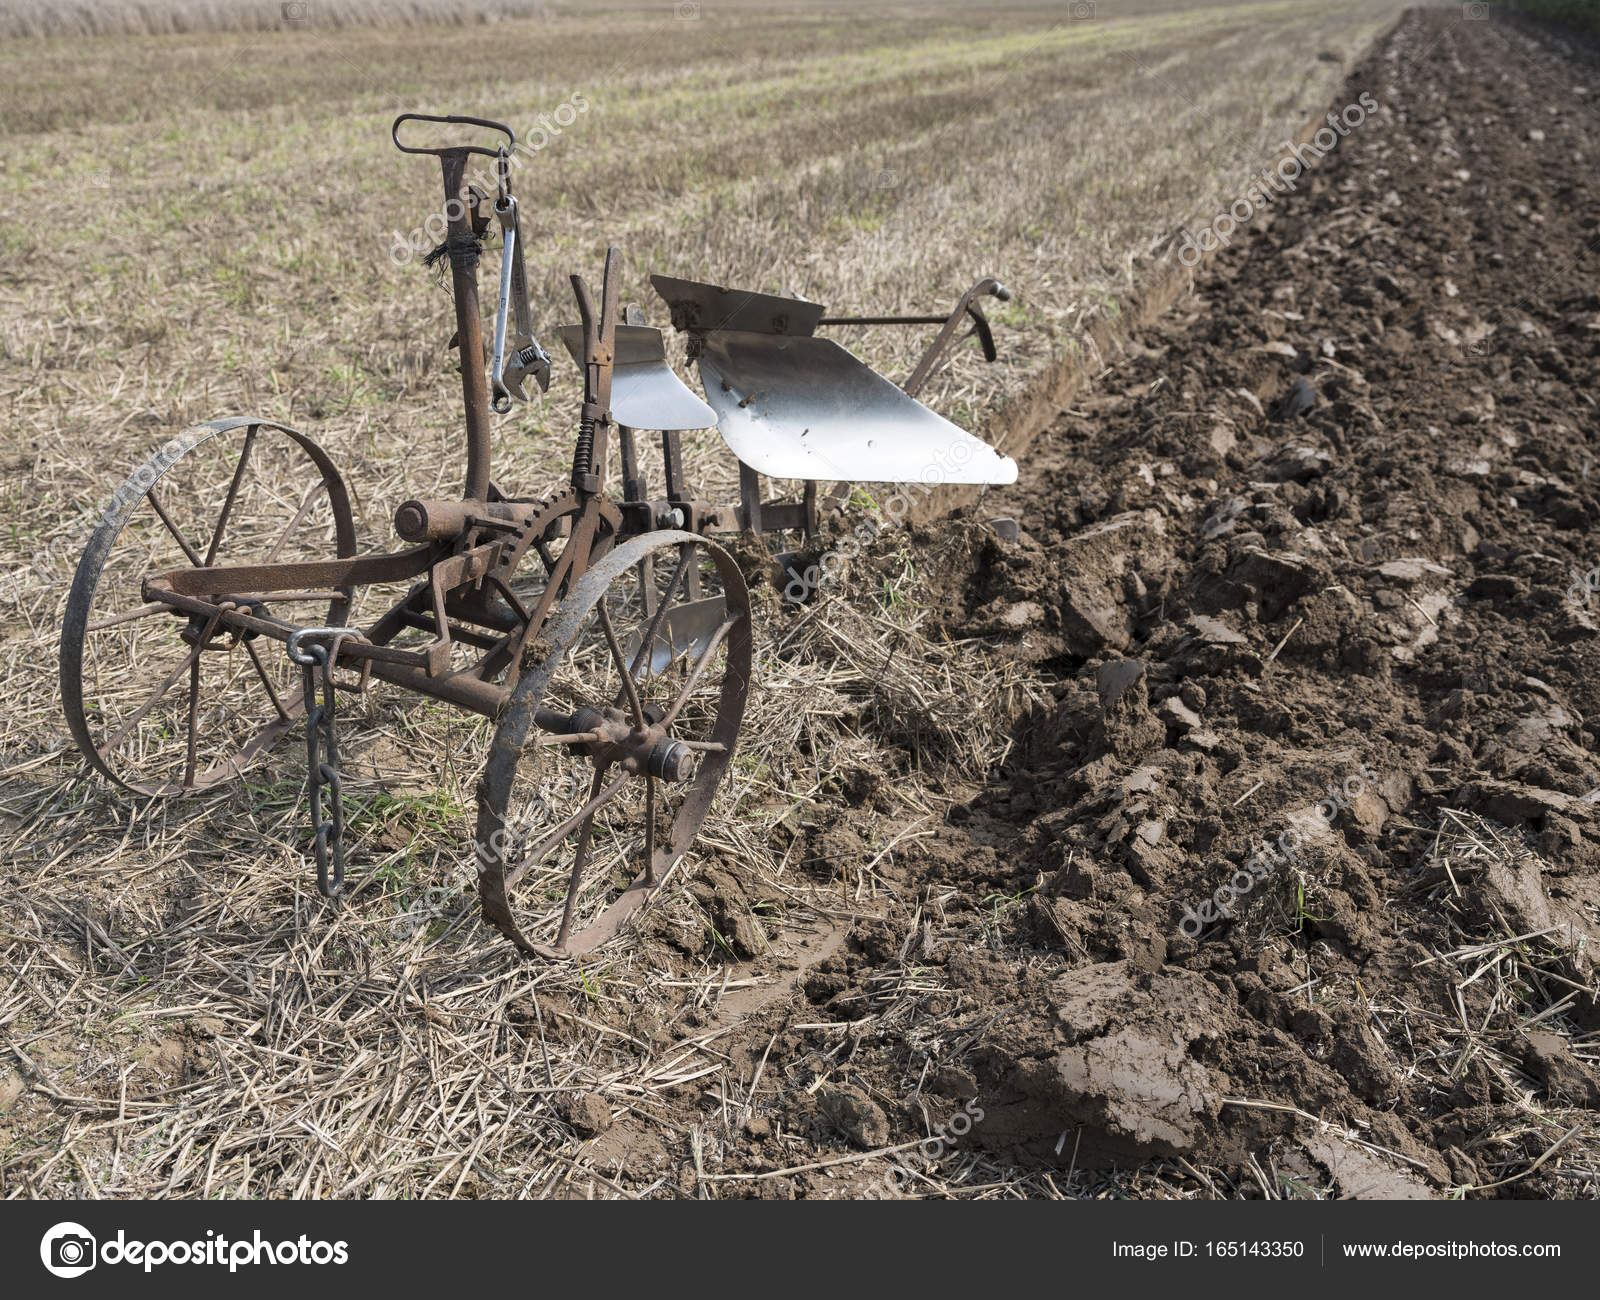 Pmages Antique Horse Drawn Plows Old Vintage Horse Drawn Plow On Field In Holland Stock Photo C Ahavelaar 165143350